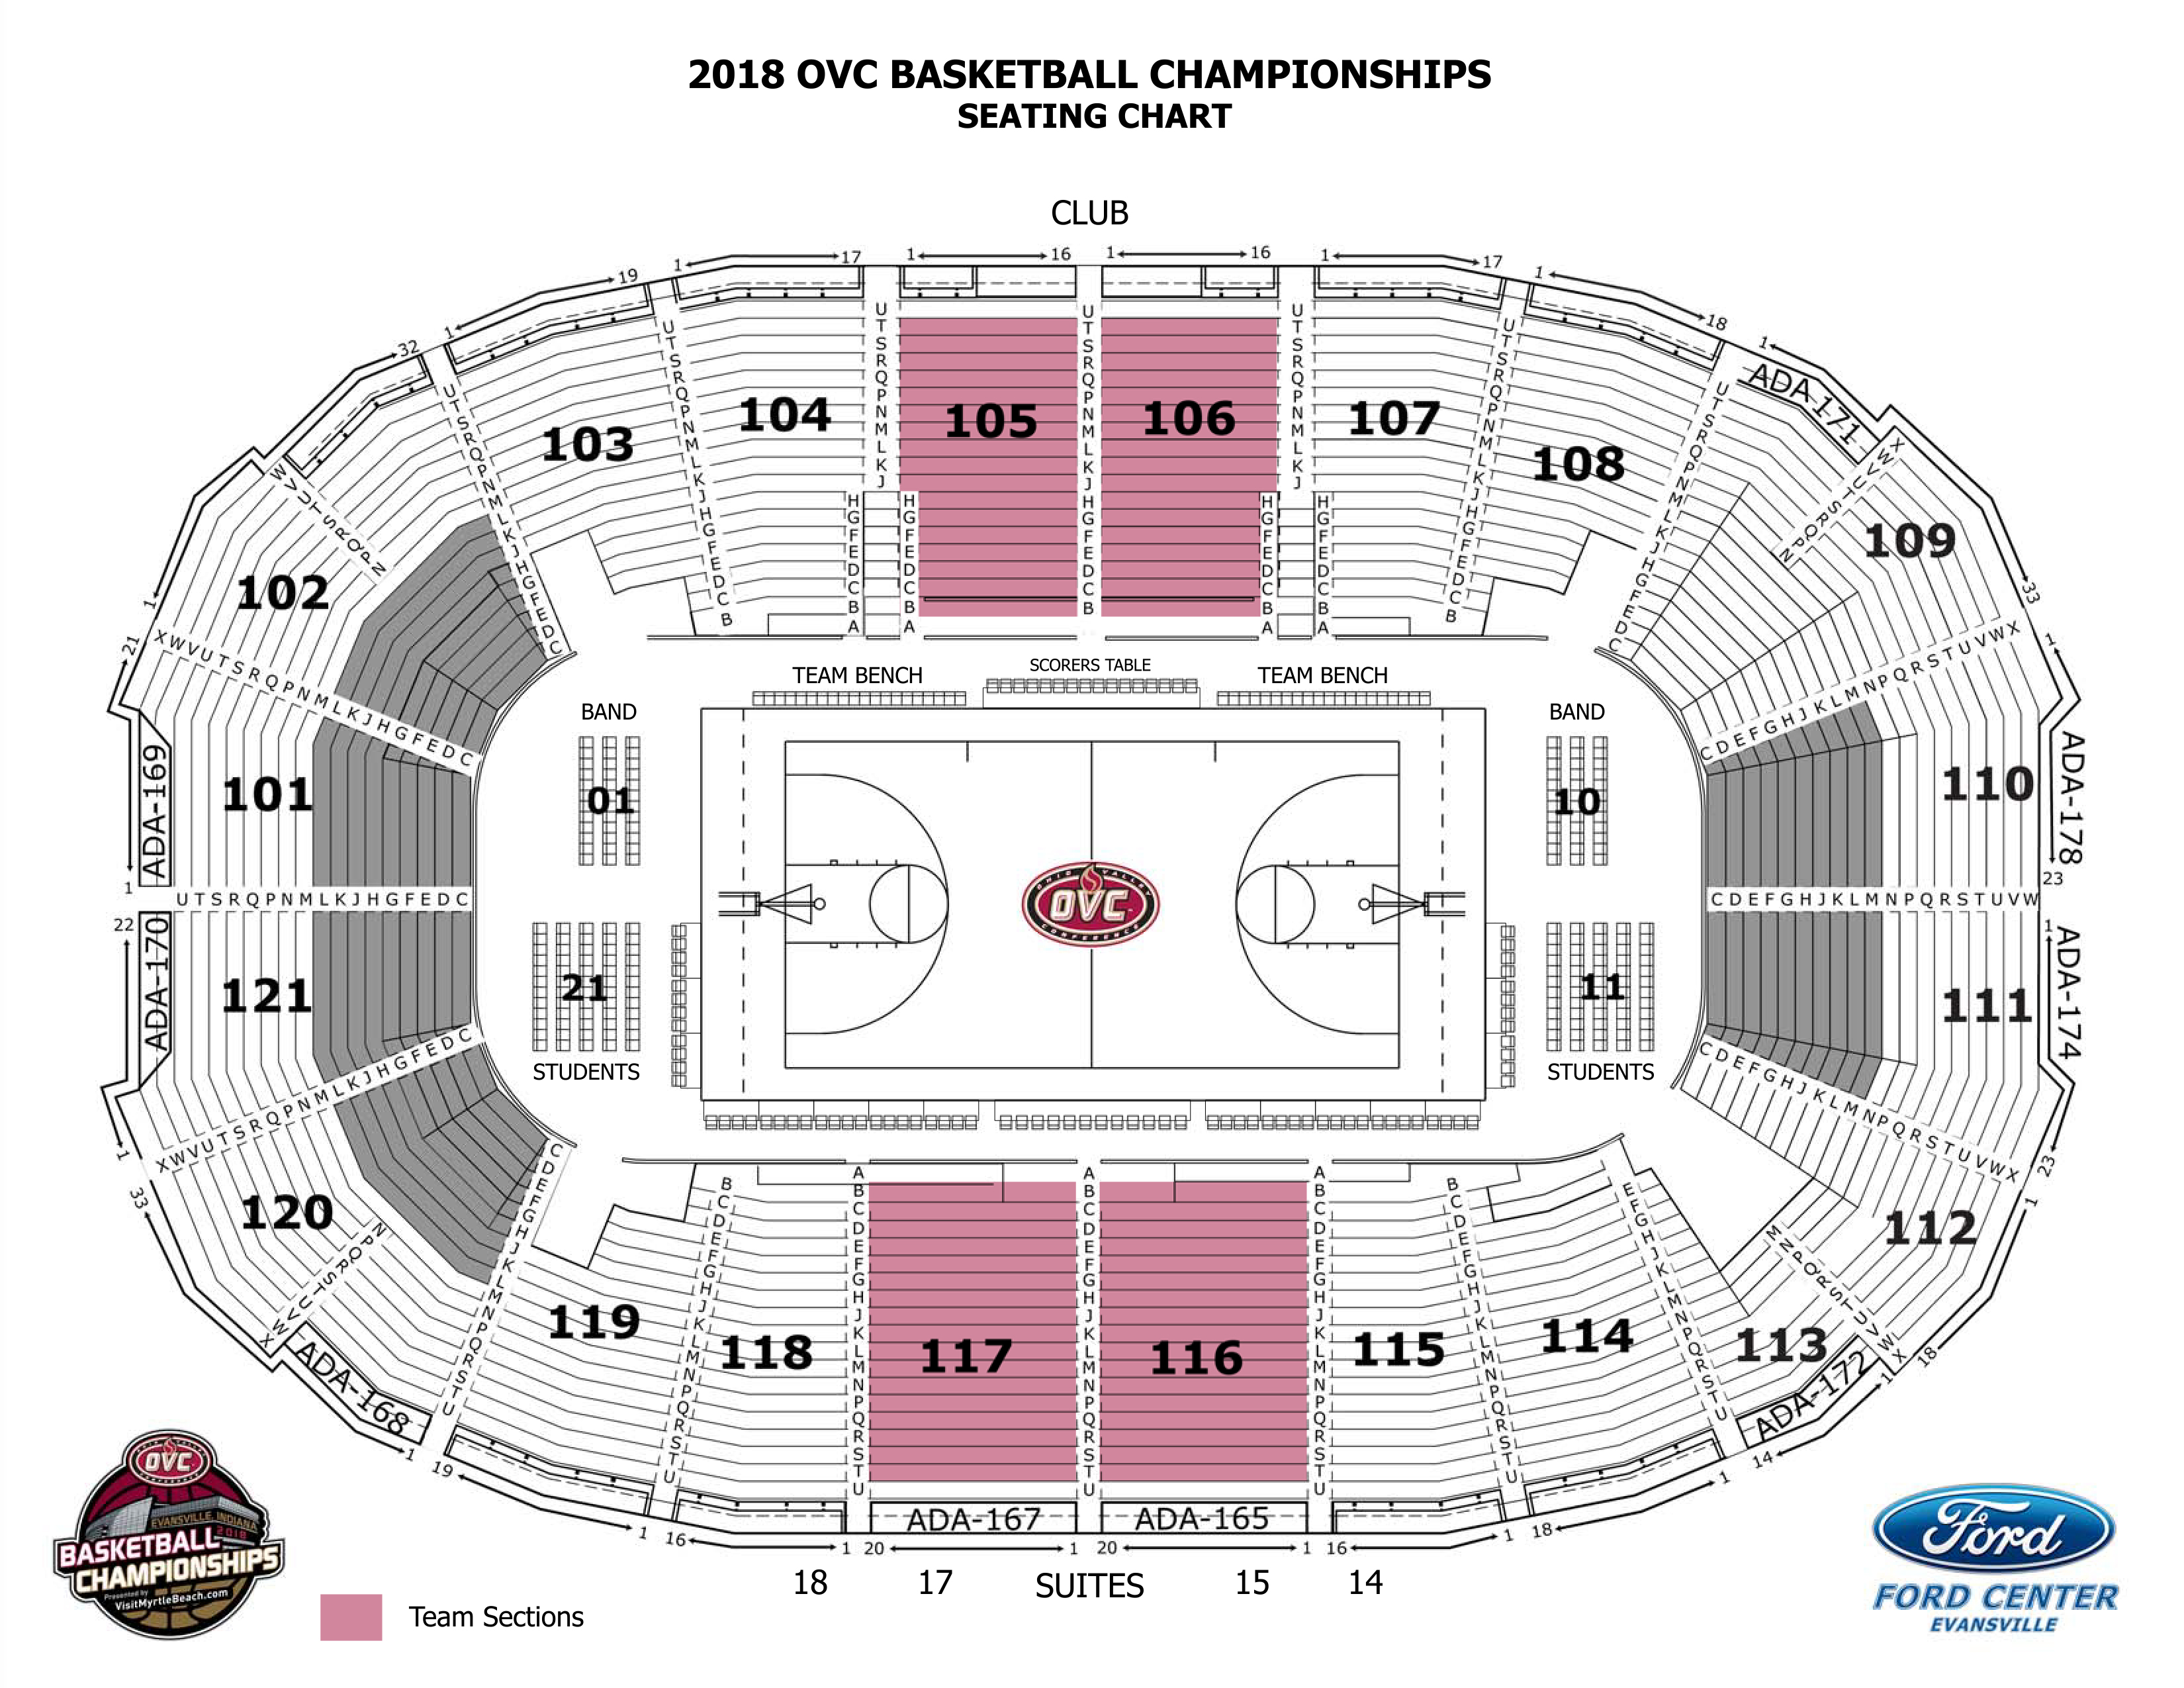 CLICK HERE for an image of the Ford Center seating chart